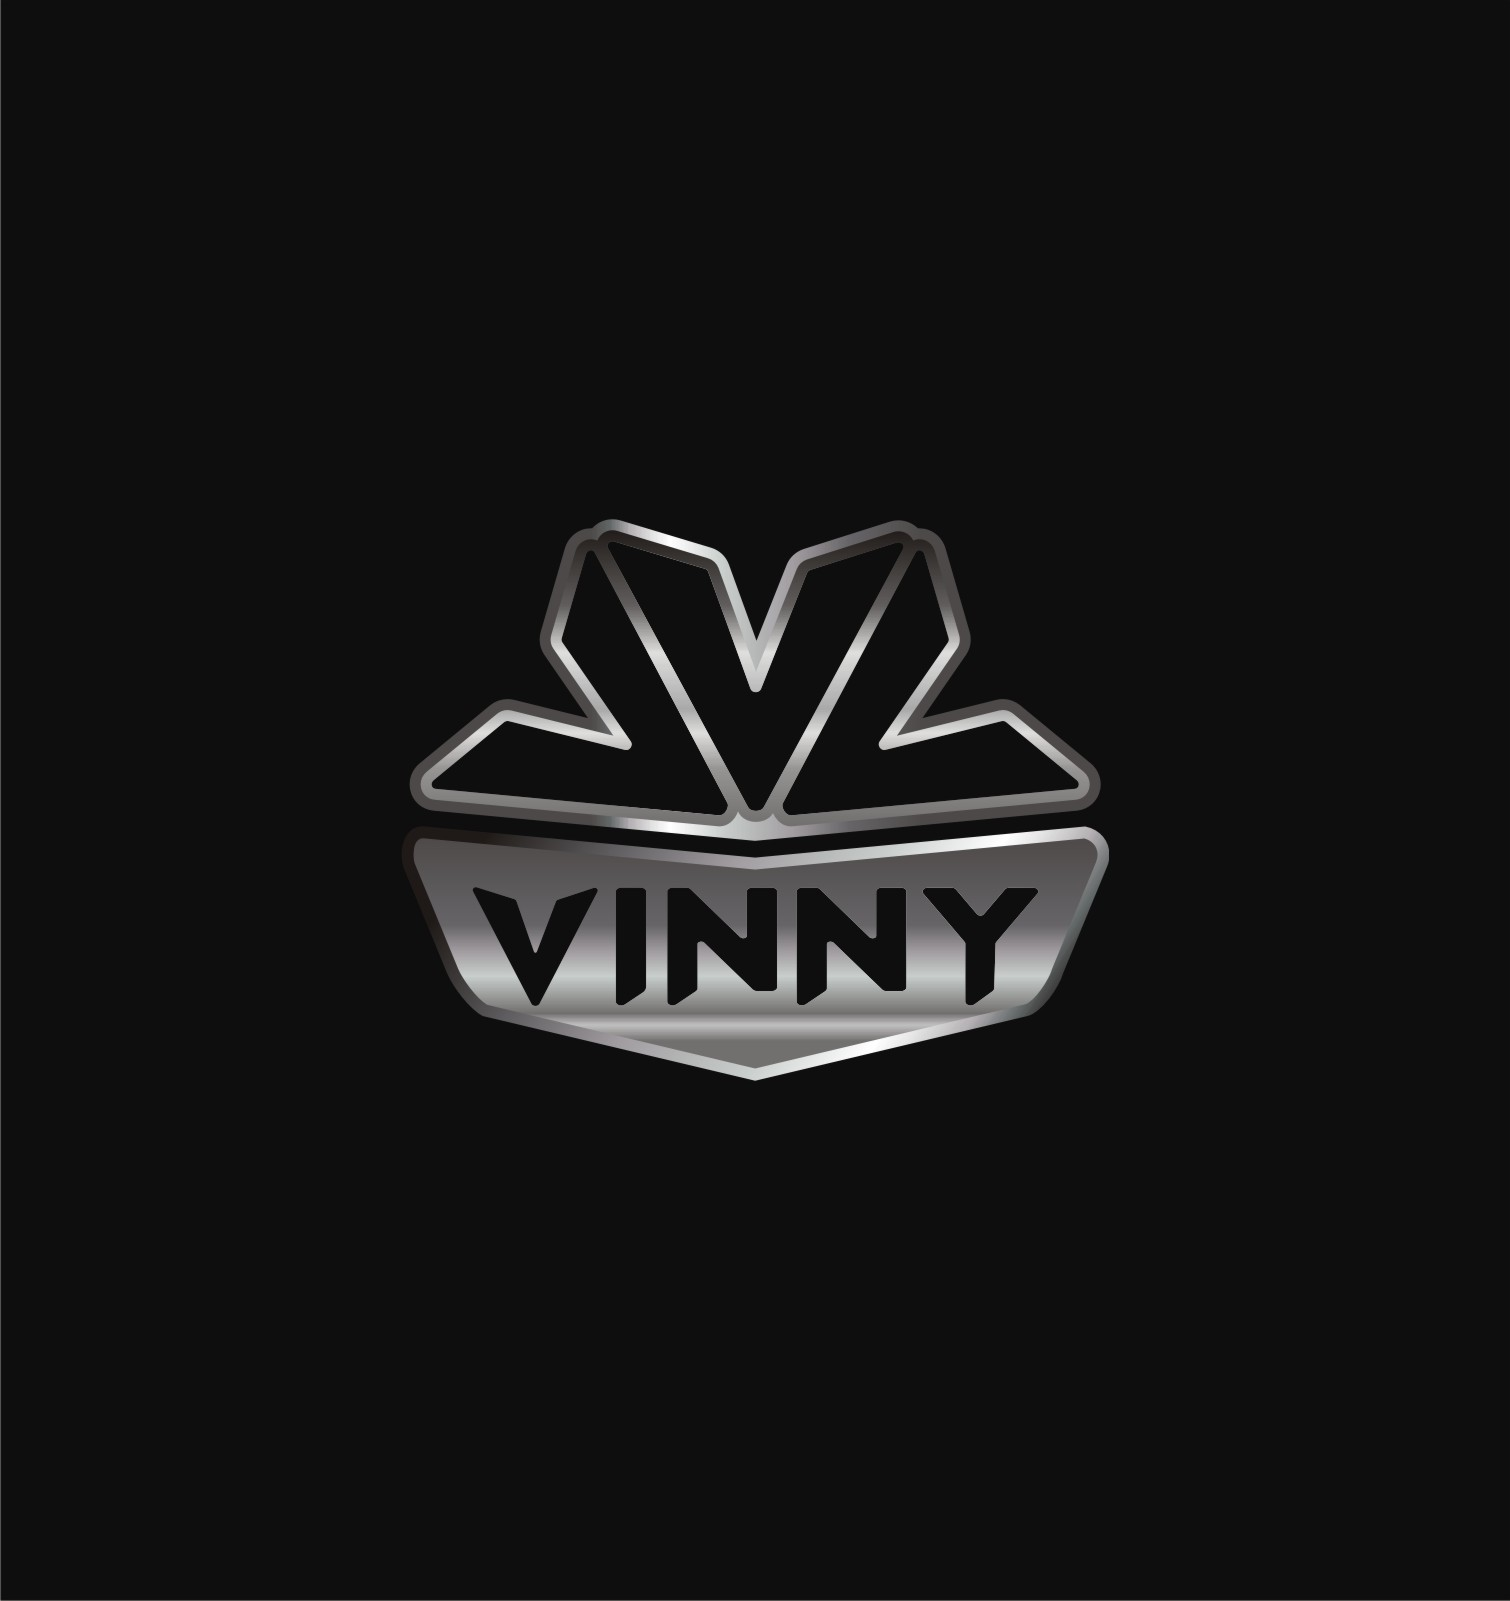 Logo Design by Private User - Entry No. 184 in the Logo Design Contest Unique Logo Design Wanted for Vinny.